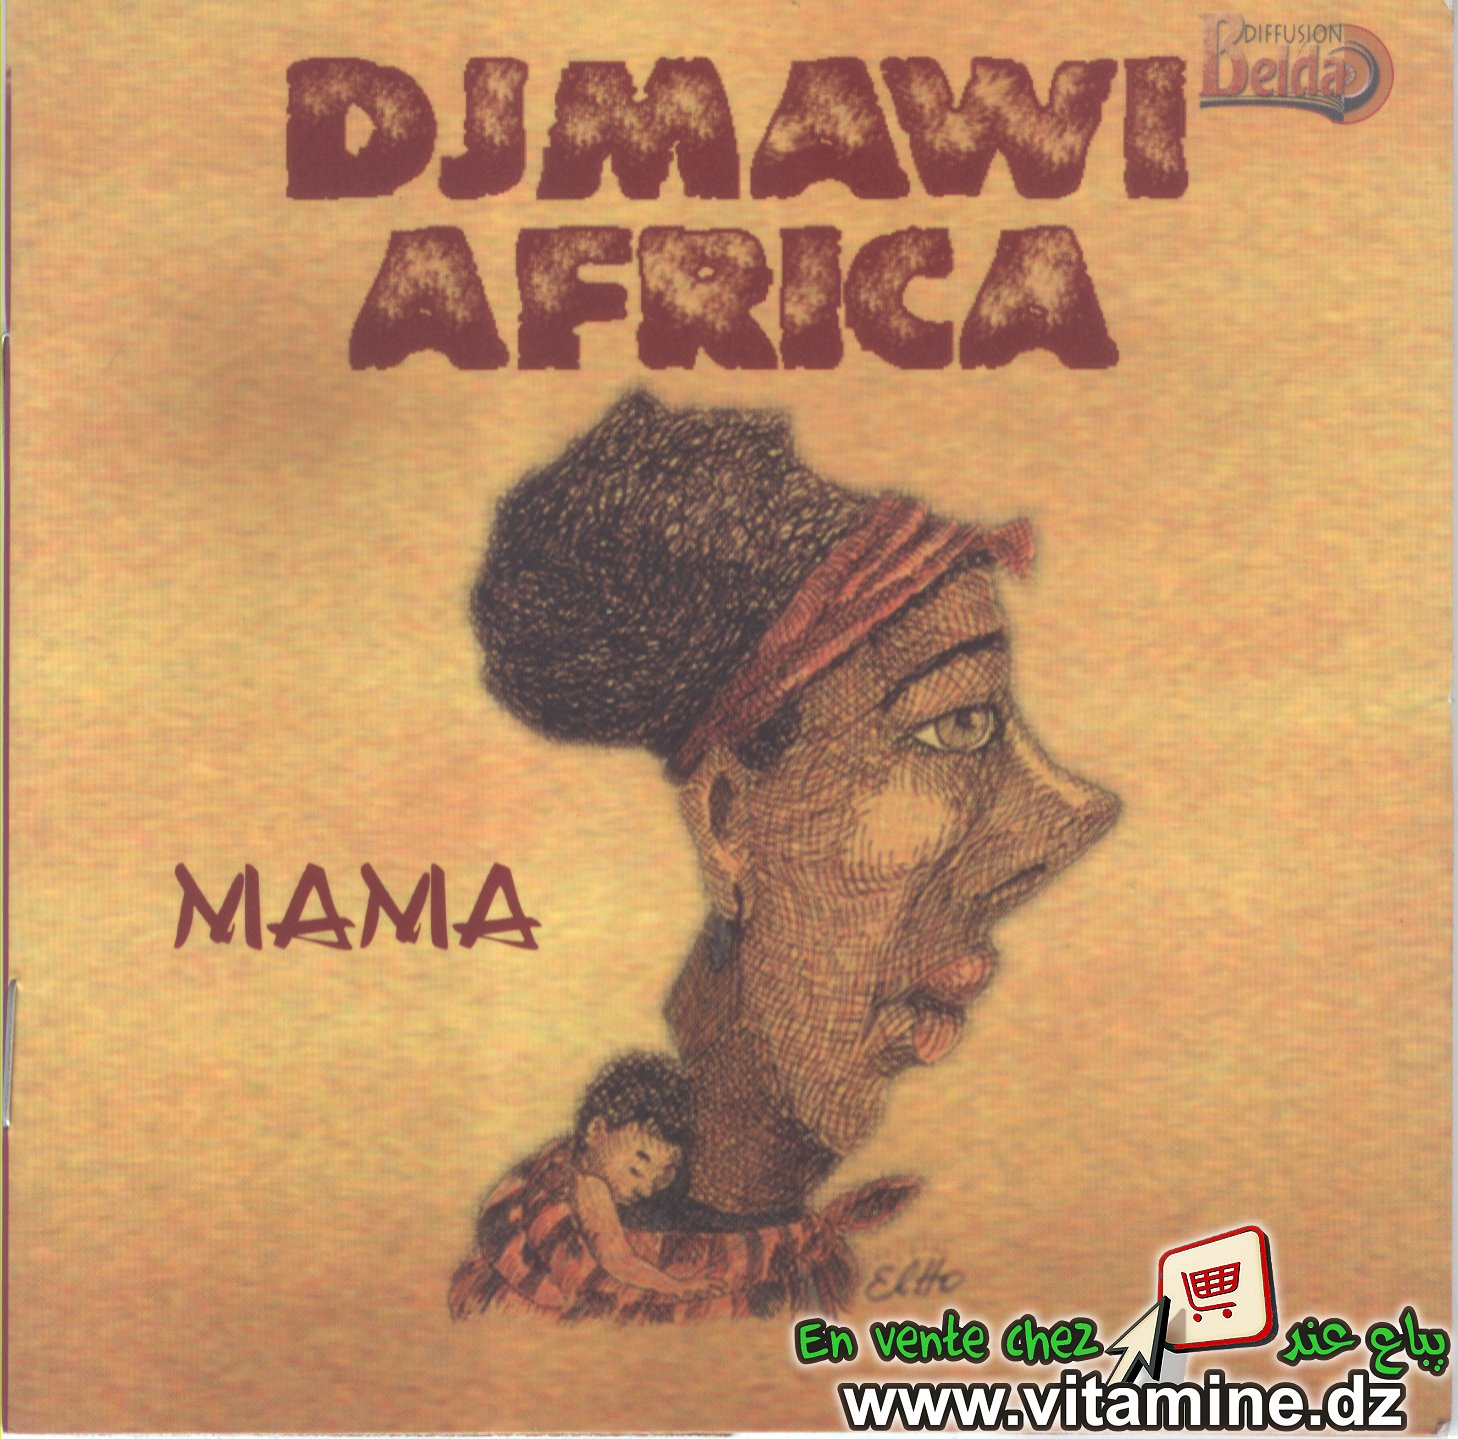 Djmawi Africa - mama